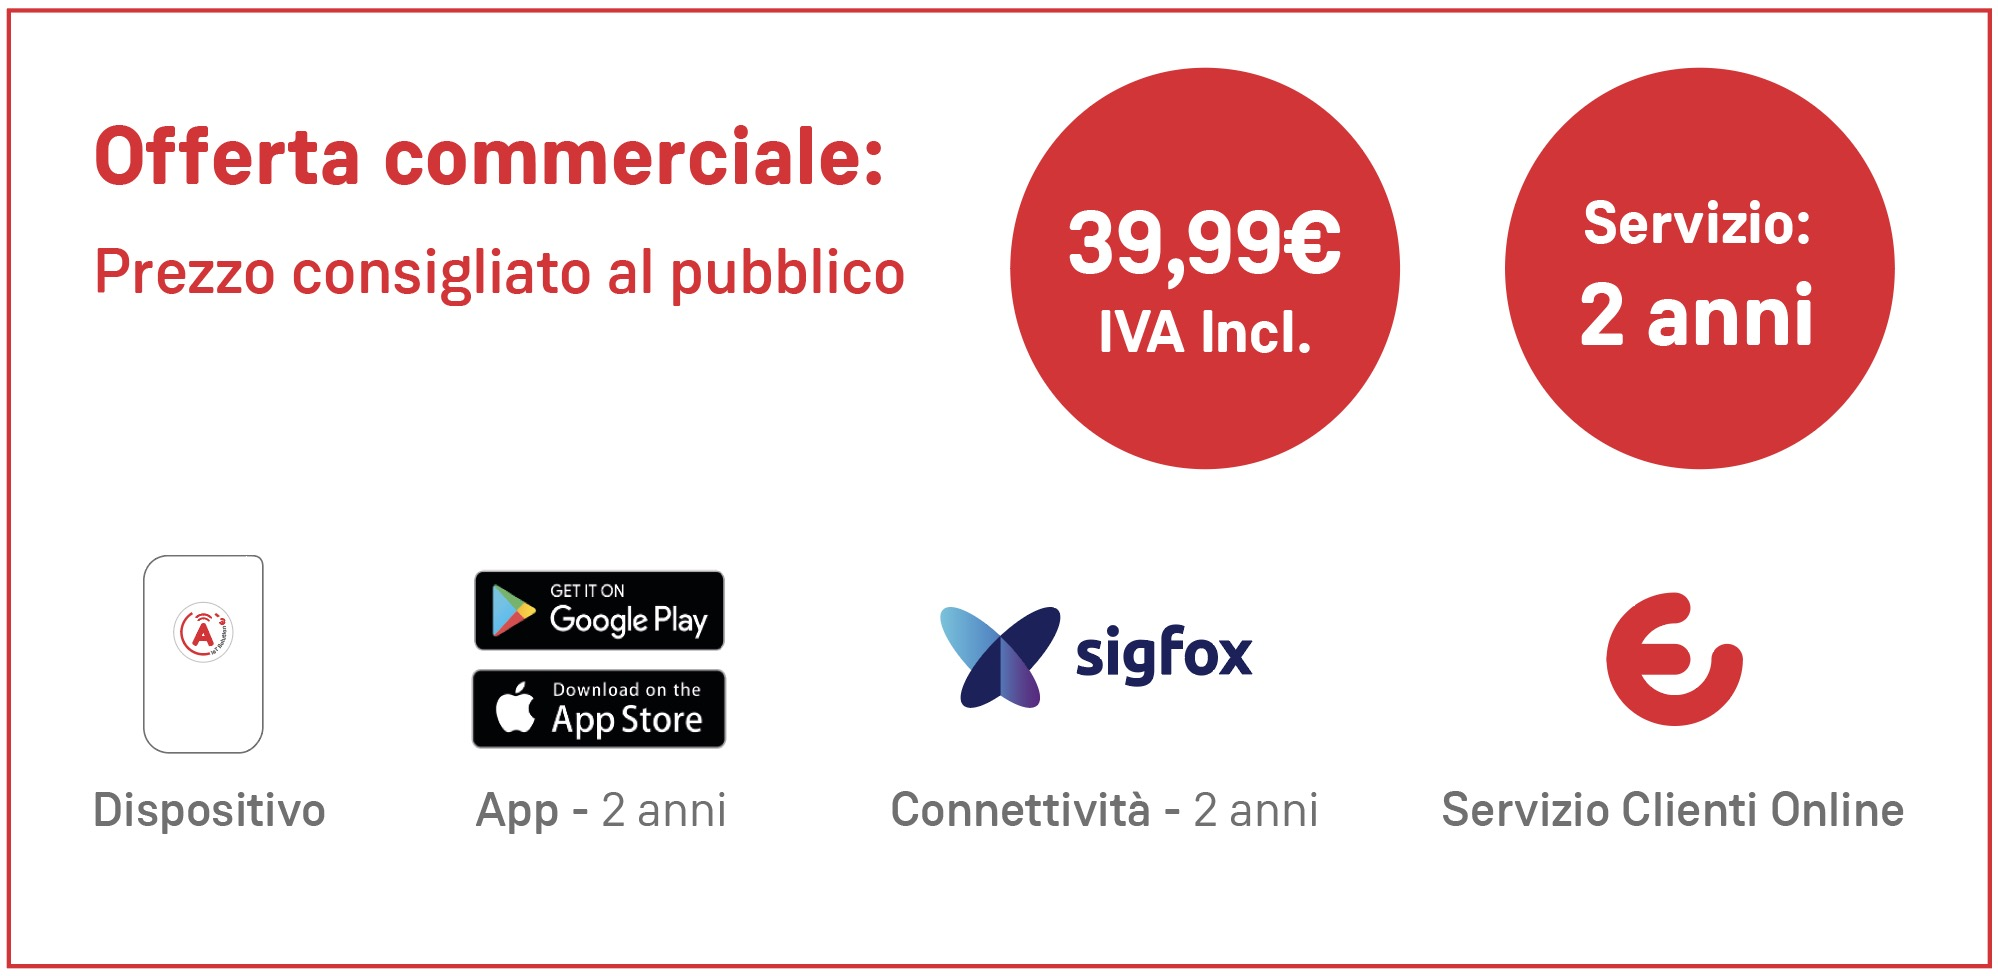 ask offerta commerciale